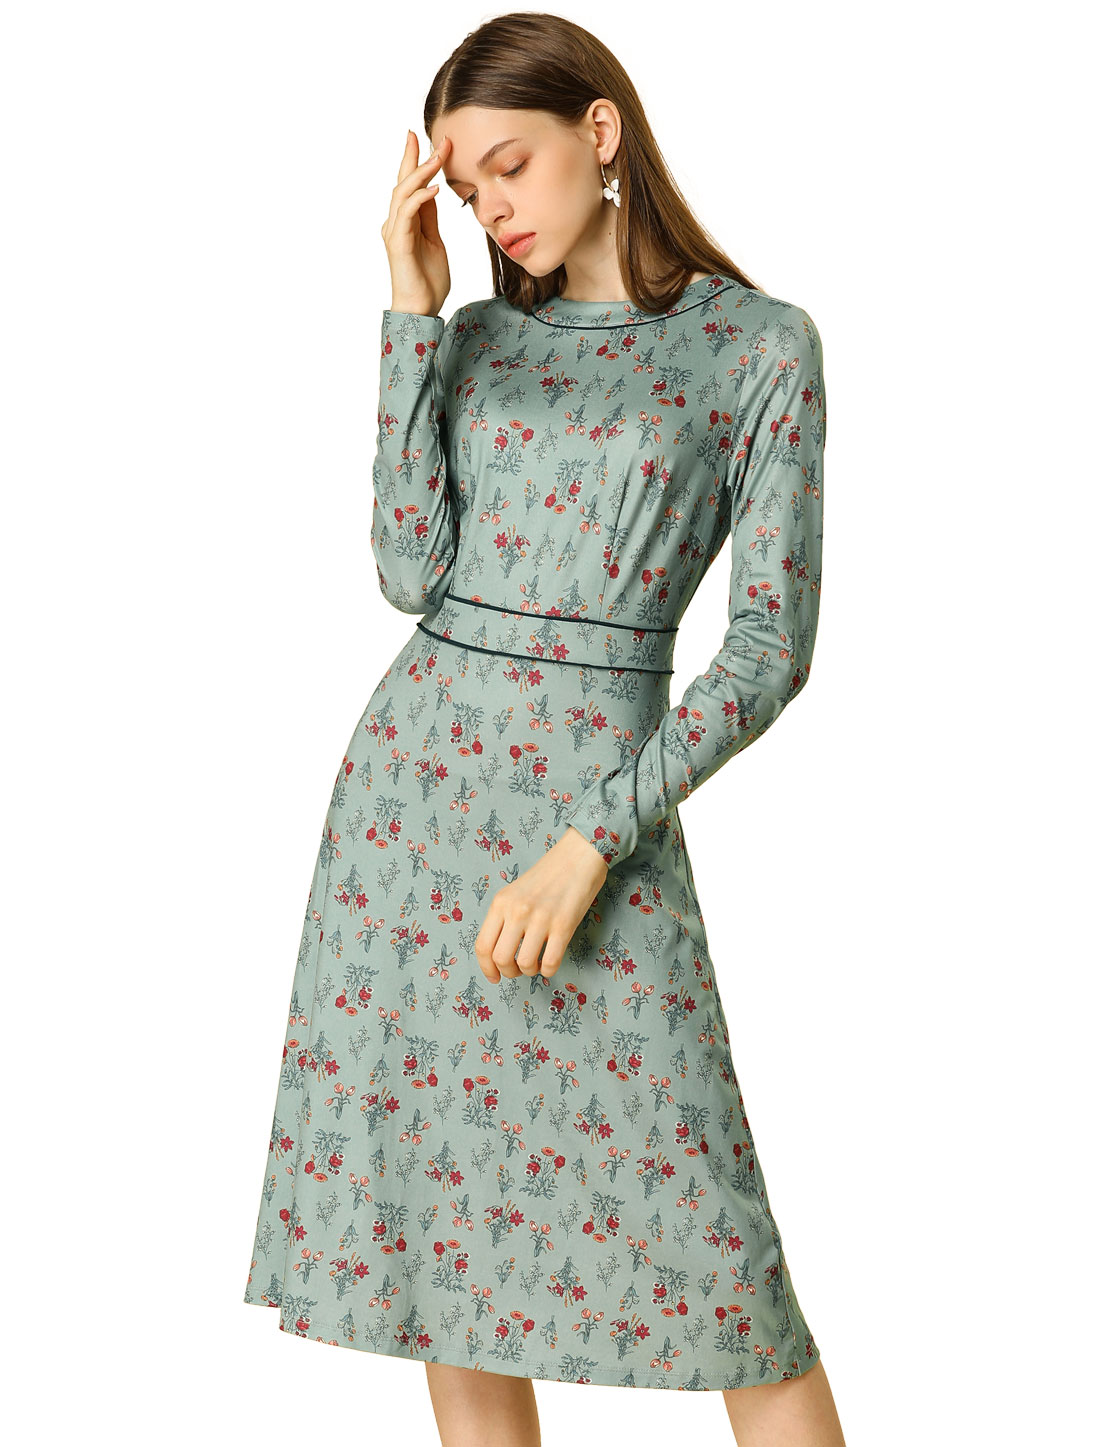 Women's Floral Long Sleeve A-Line Contrast Piped Vintage Dress Green L